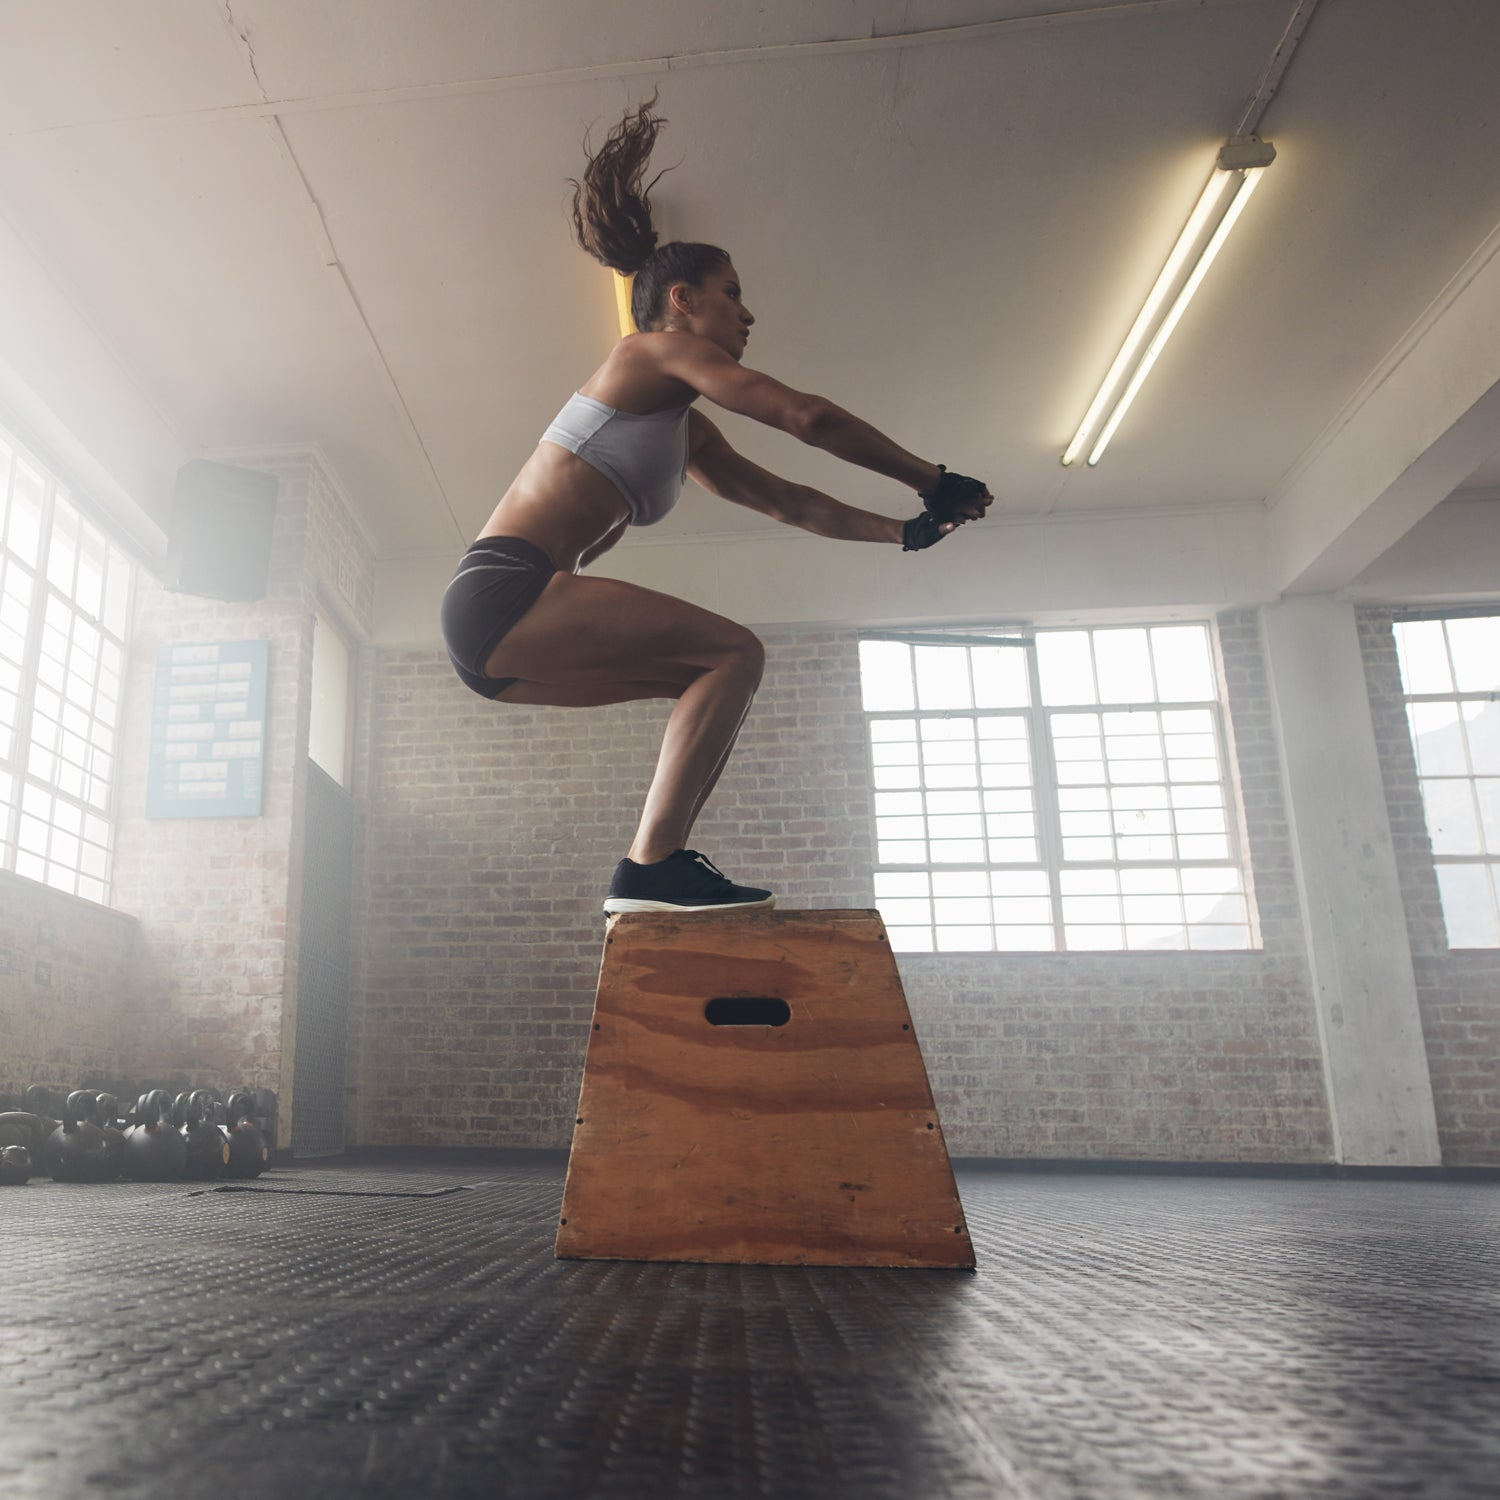 6 Exercises To Build Explosive Leg Strength